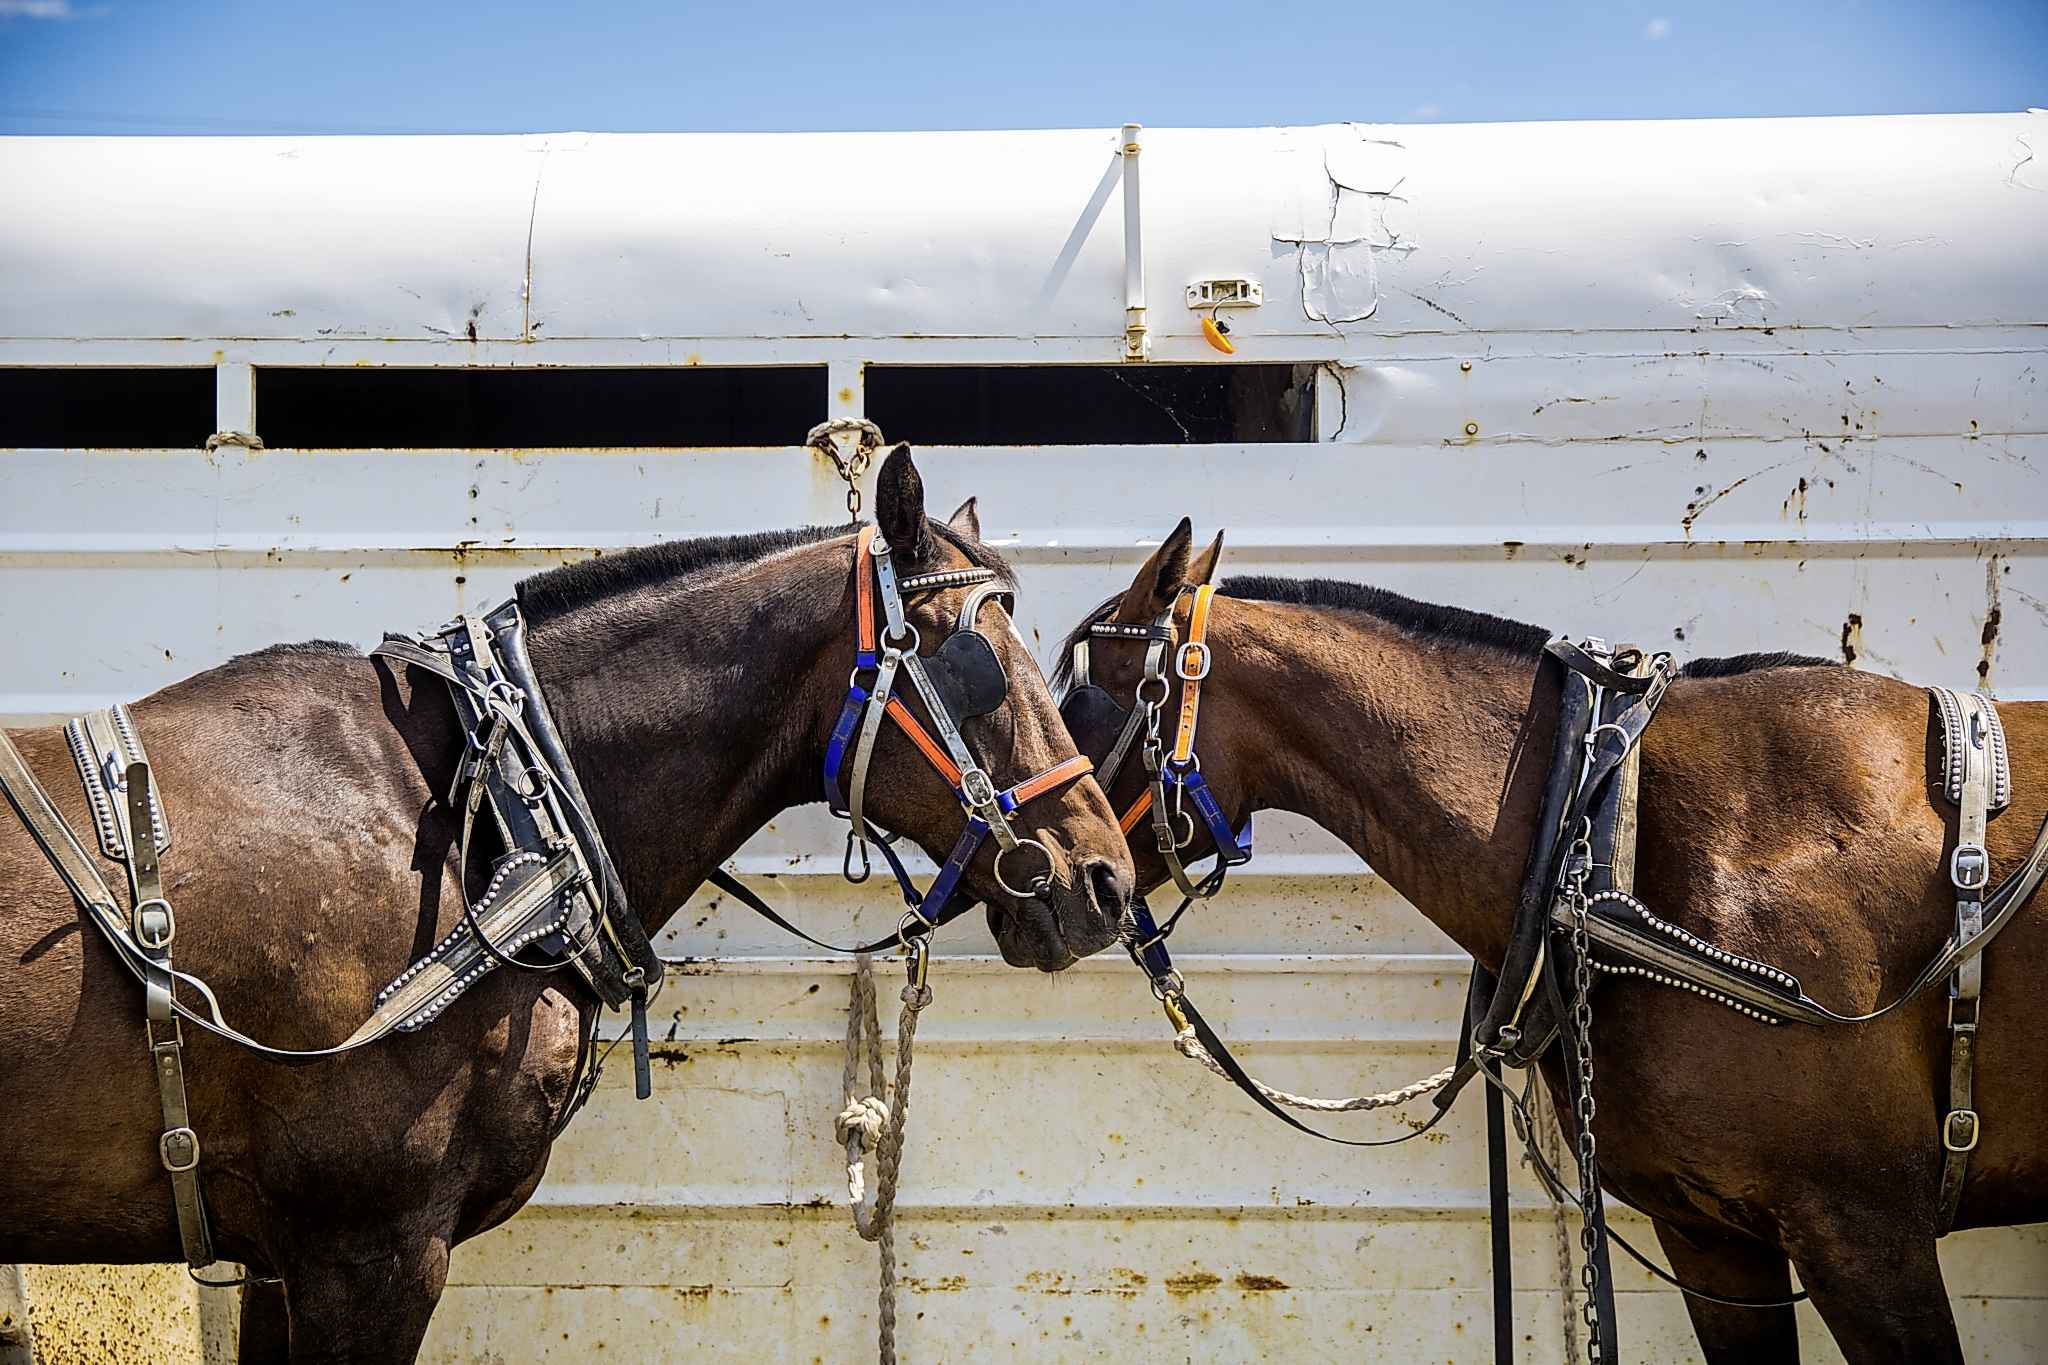 Kurtis Callander's chariot horses, tacked up and ready to go.